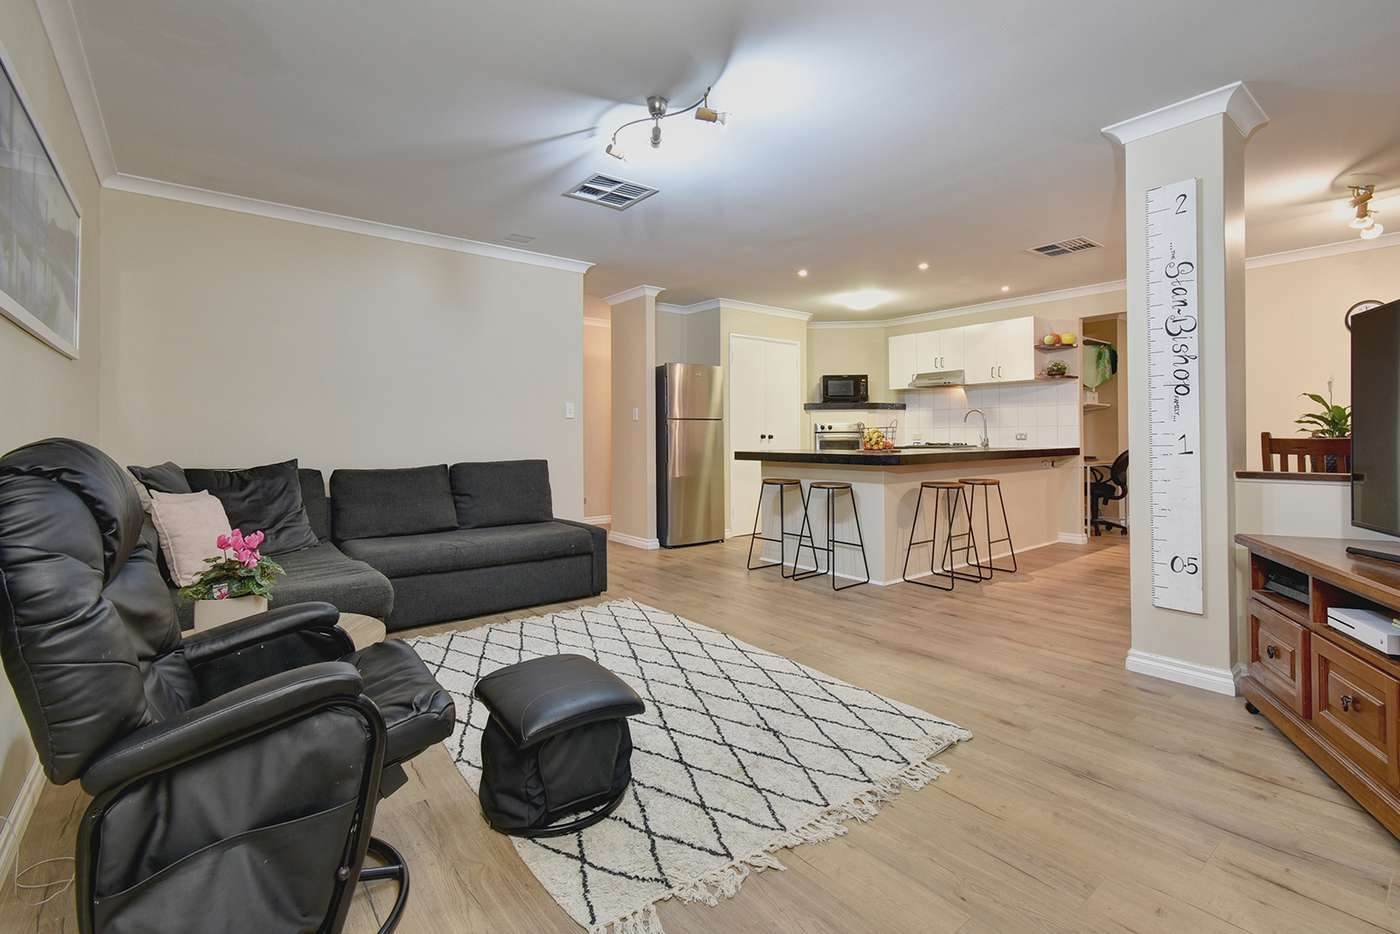 Seventh view of Homely house listing, 55 Norwood Loop, Tapping WA 6065